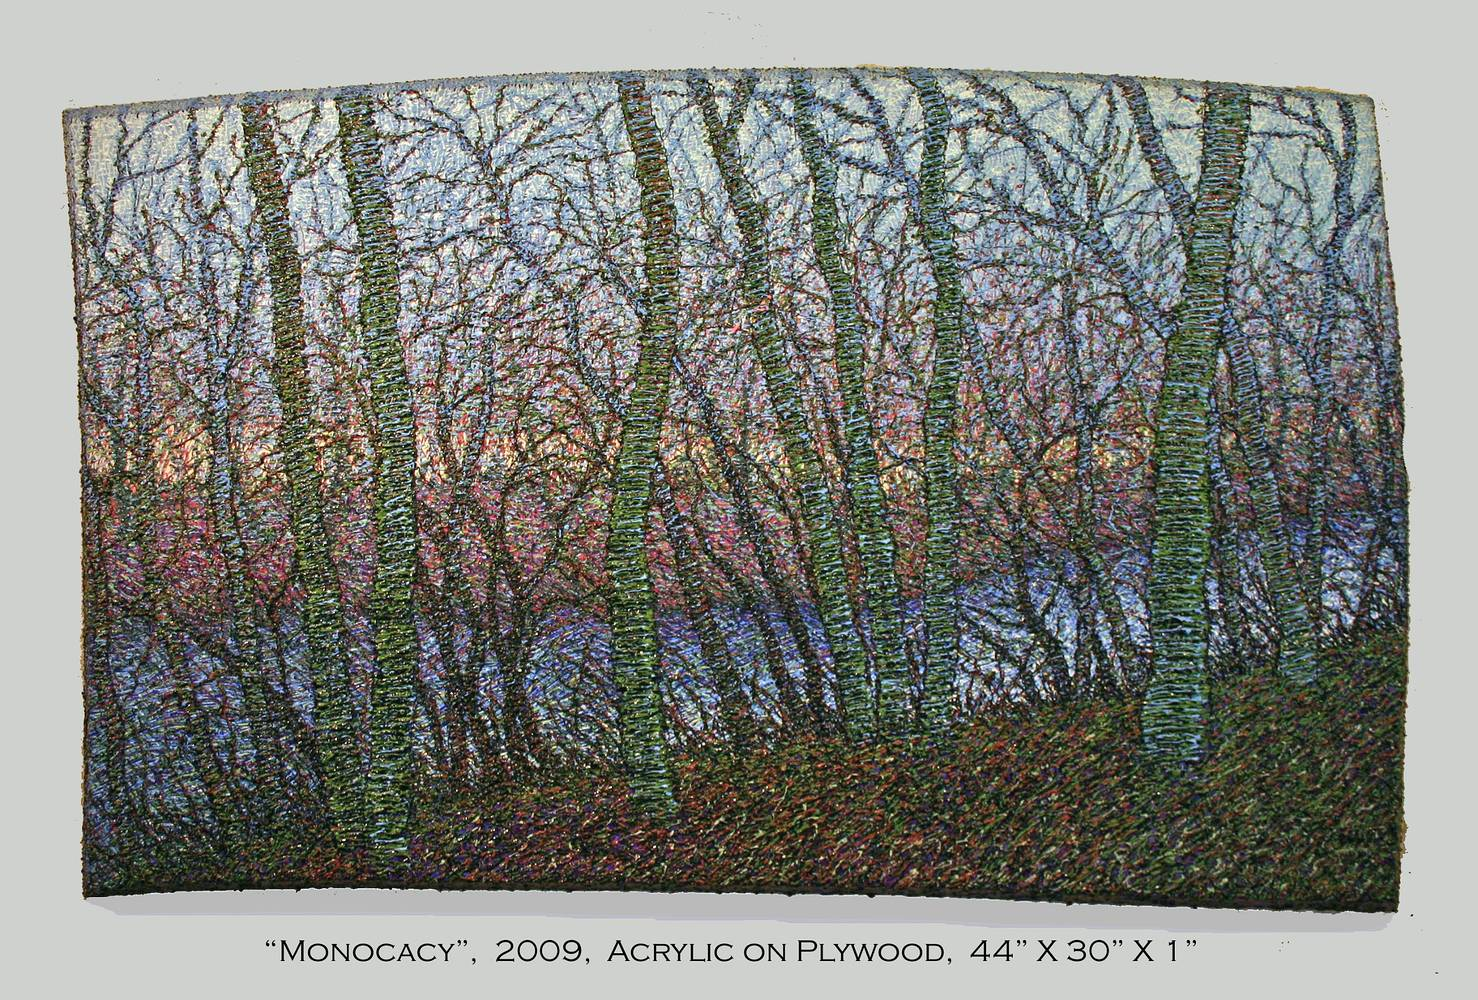 Monocacy, 2009 by Douglas Moulden